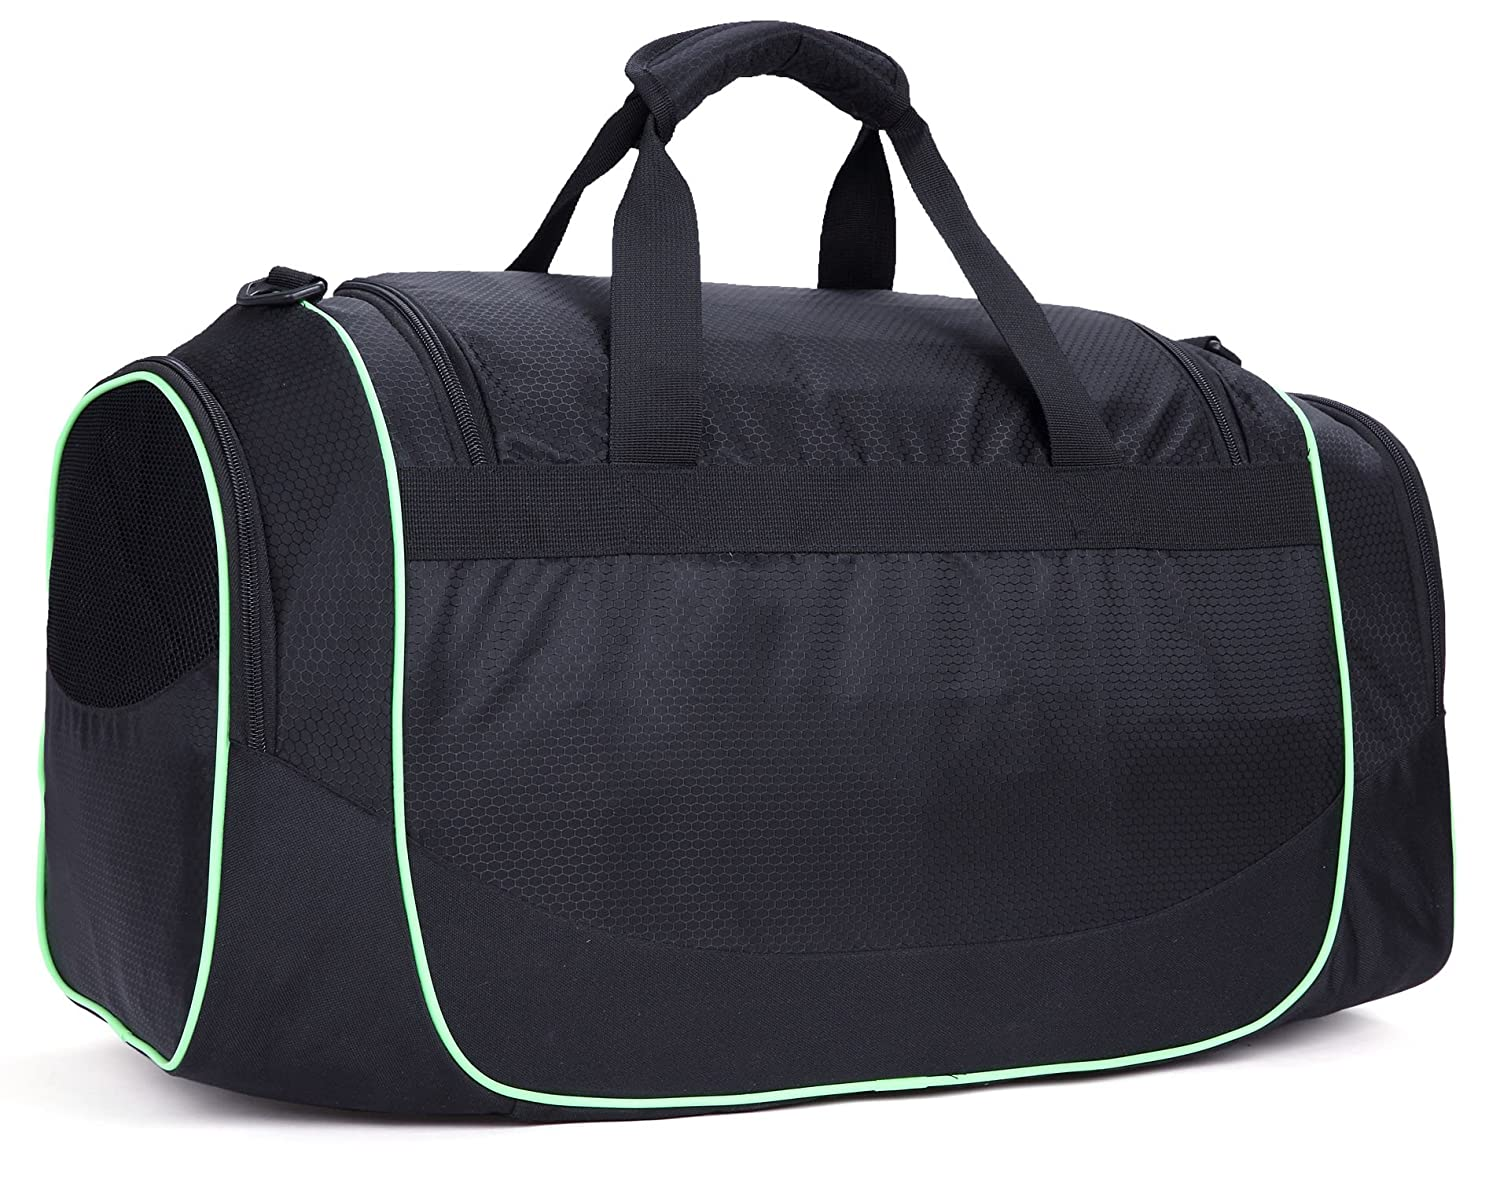 MIER Men s Gym Bag with Shoe Compartment Sports Duffel Holdall Bag, 50L,  Black  Amazon.co.uk  Sports   Outdoors bfed58876d